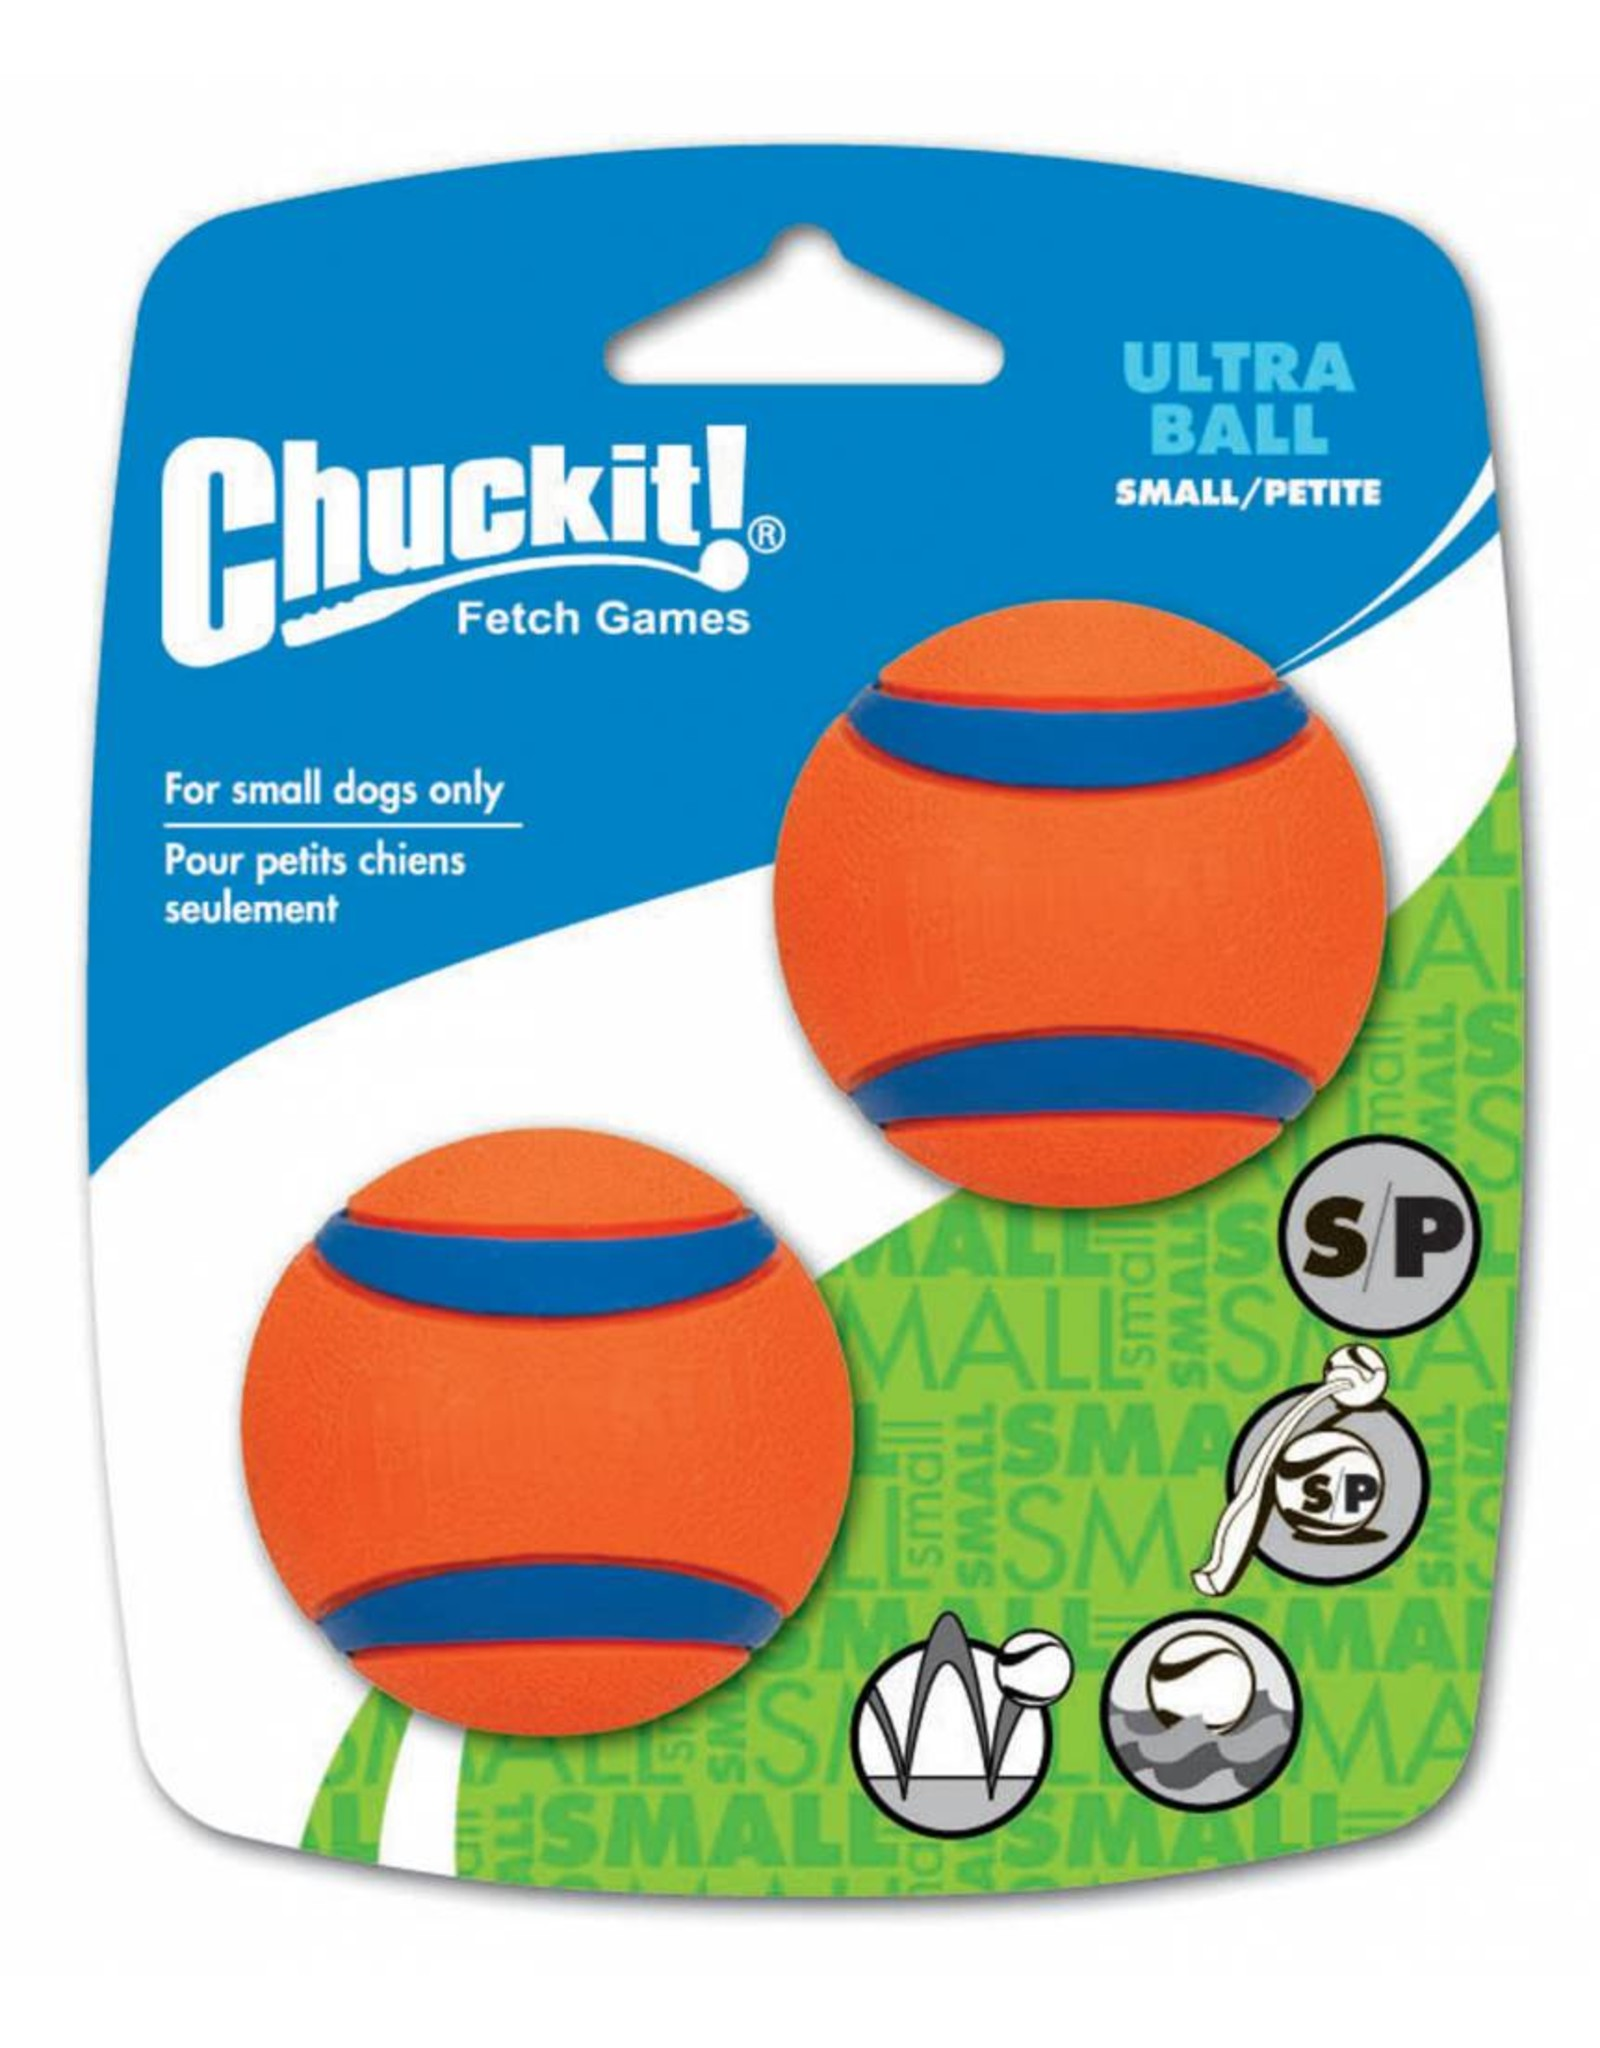 Chuckit Ultra Ball Dog Toy, Small 4.8cm, 2 pack